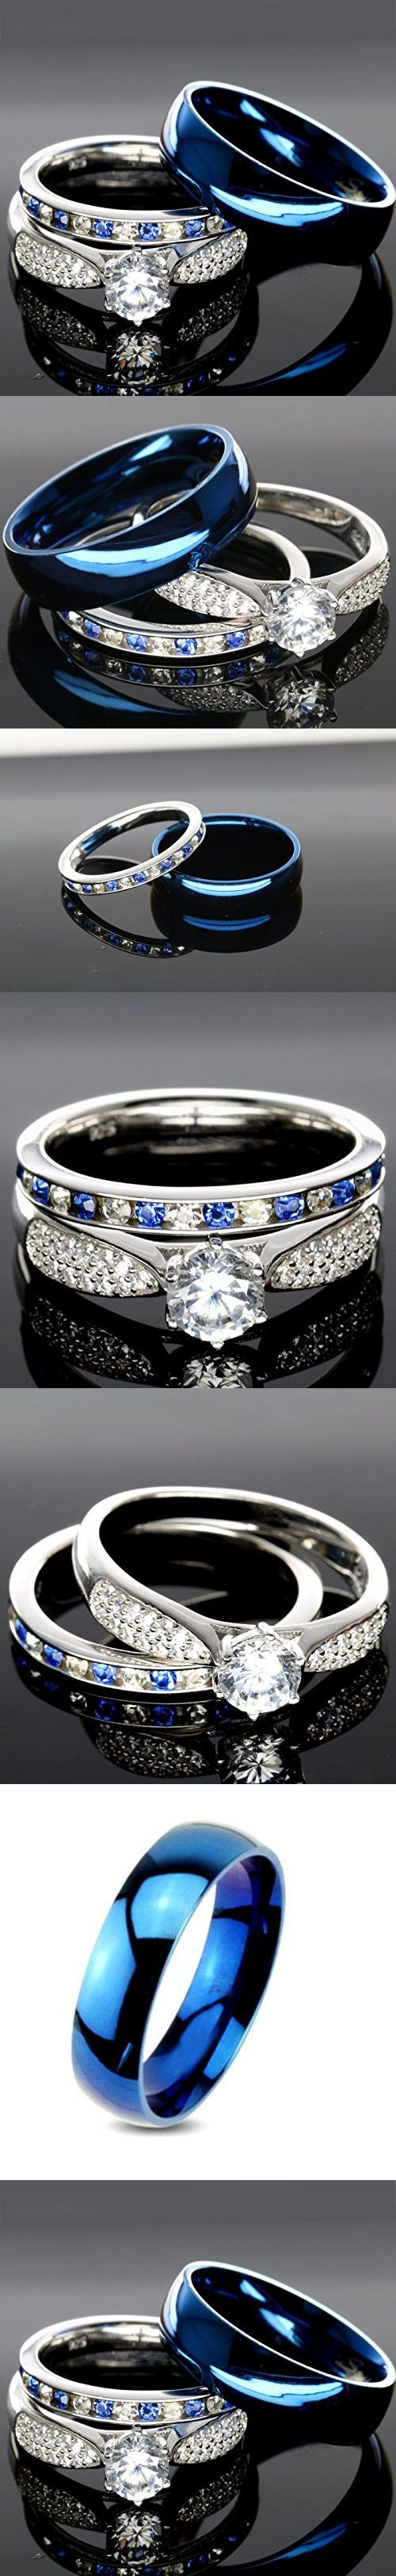 gear rings red stainless marines top aspire line mens blue ring firefighter steel keisha usmc thin lena quality products